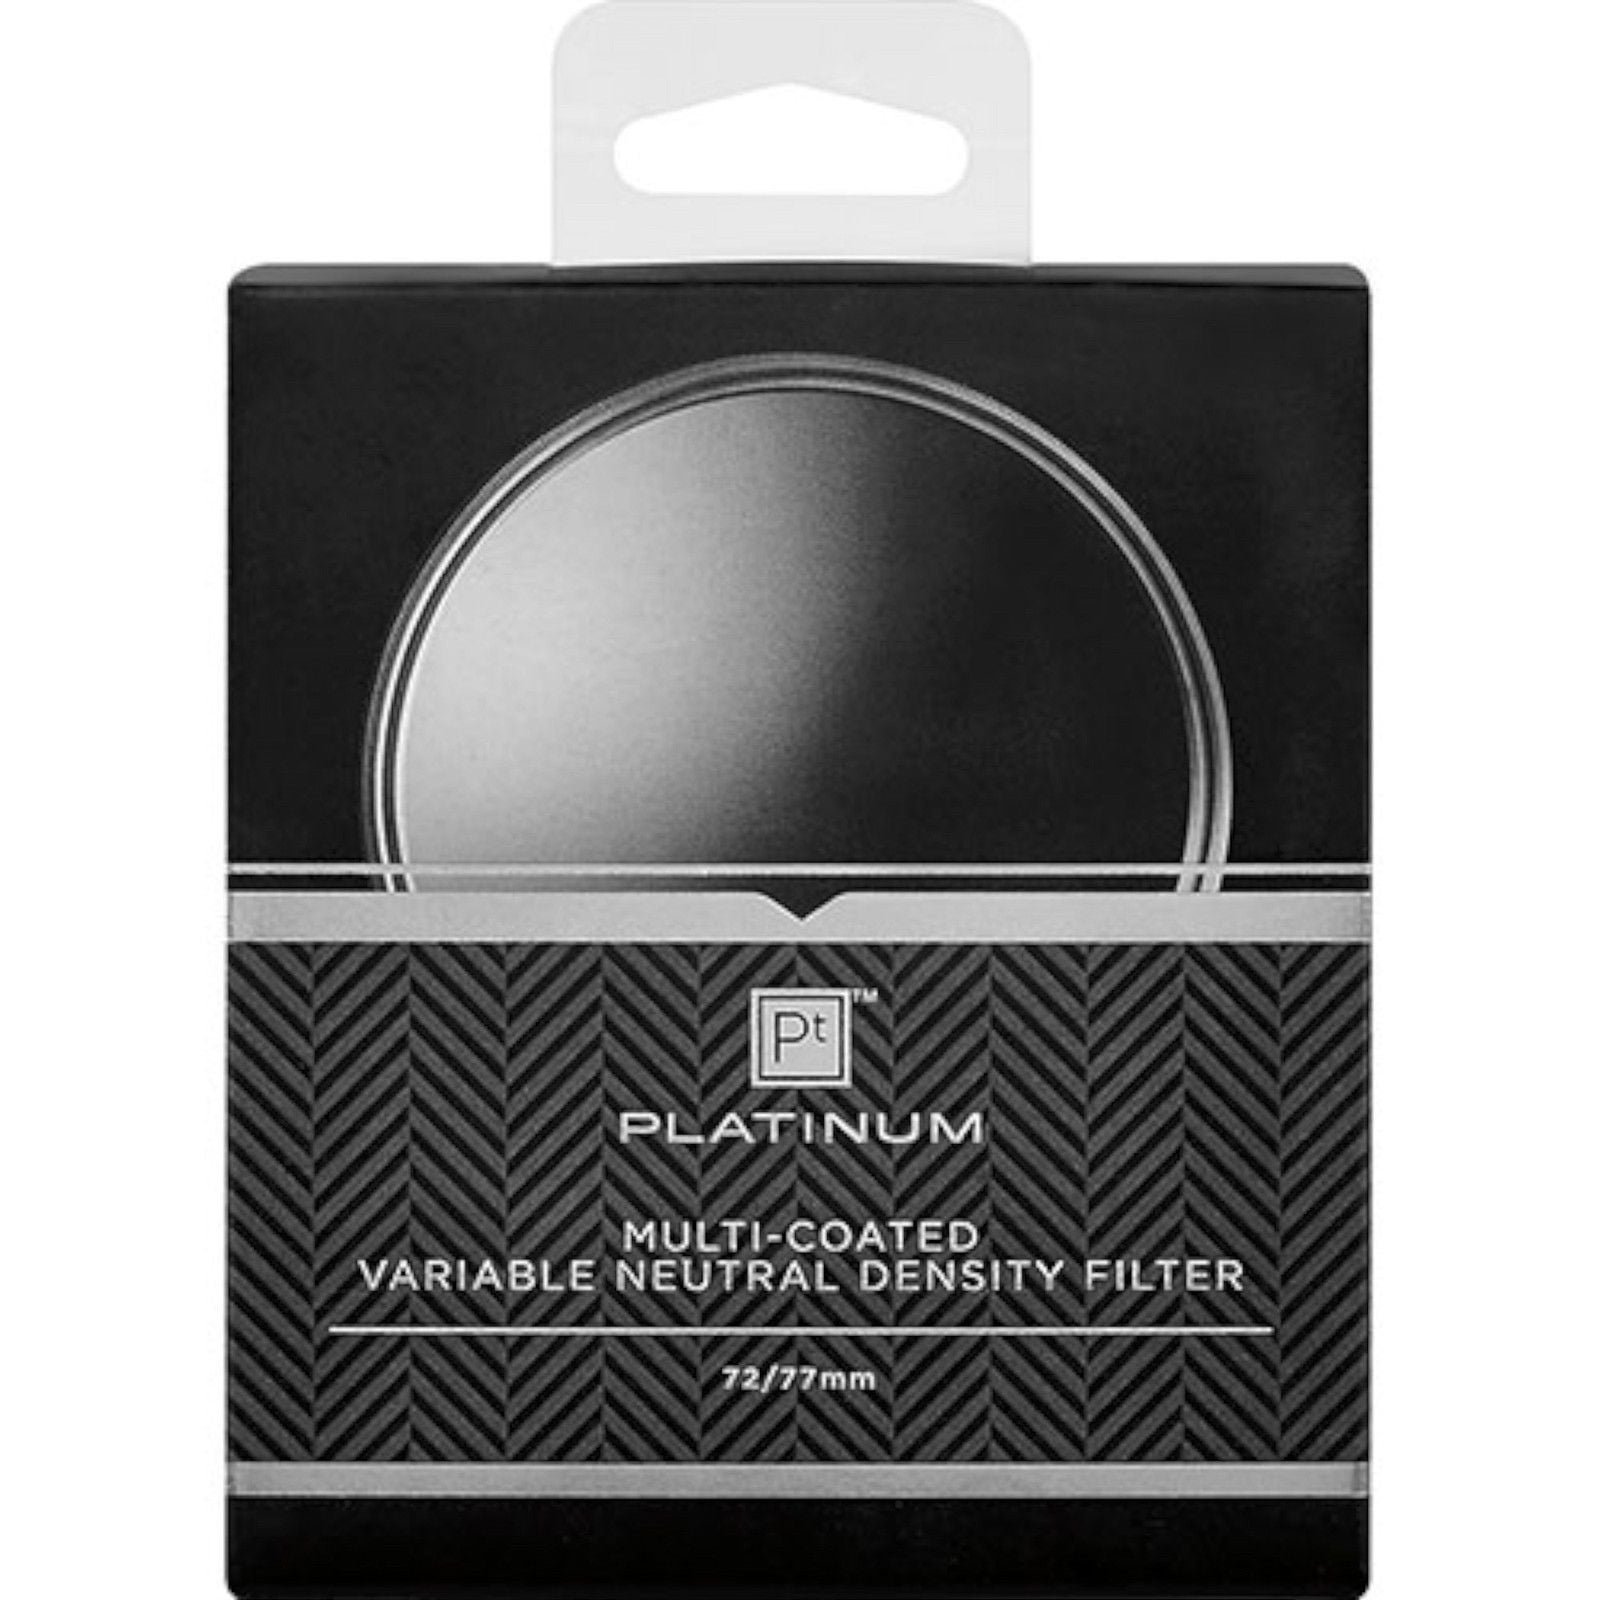 platinum variable nd filter review